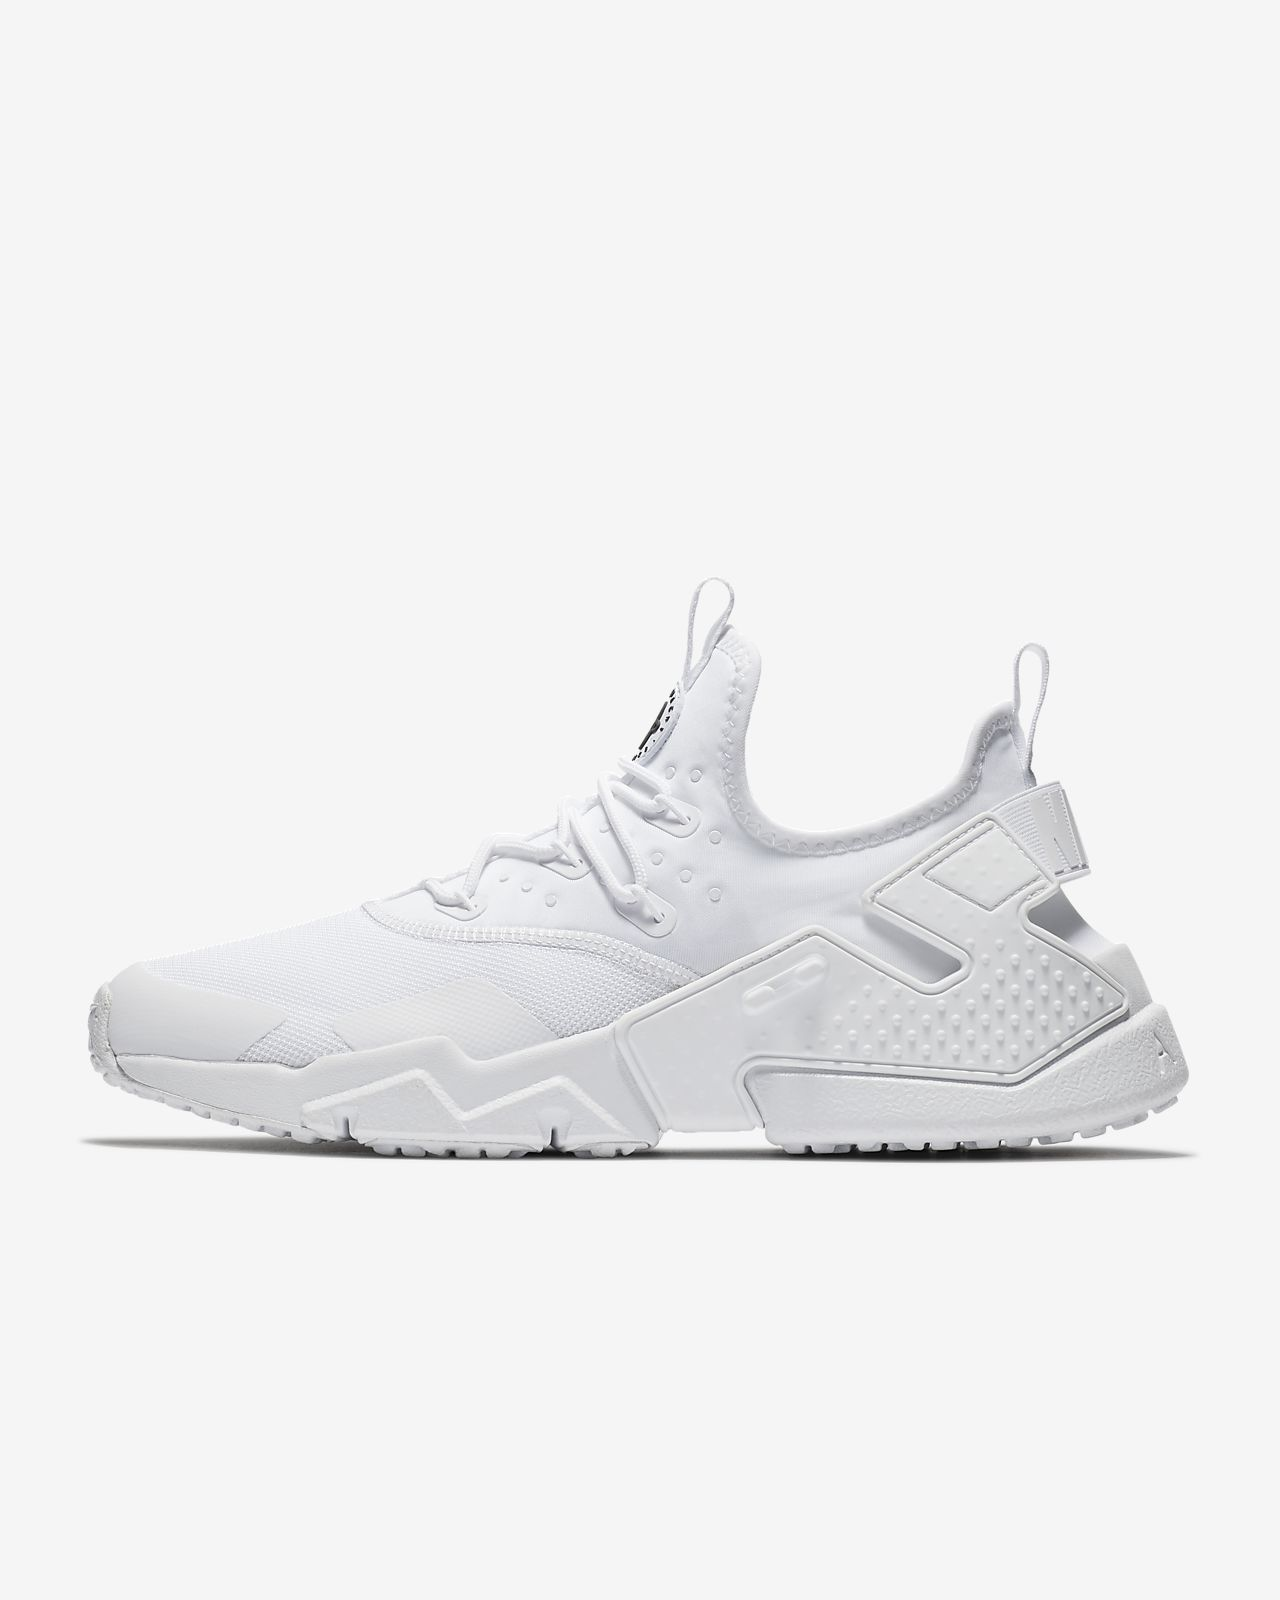 3ce71a4b816 Nike Air Huarache Drift Men s Shoe. Nike.com